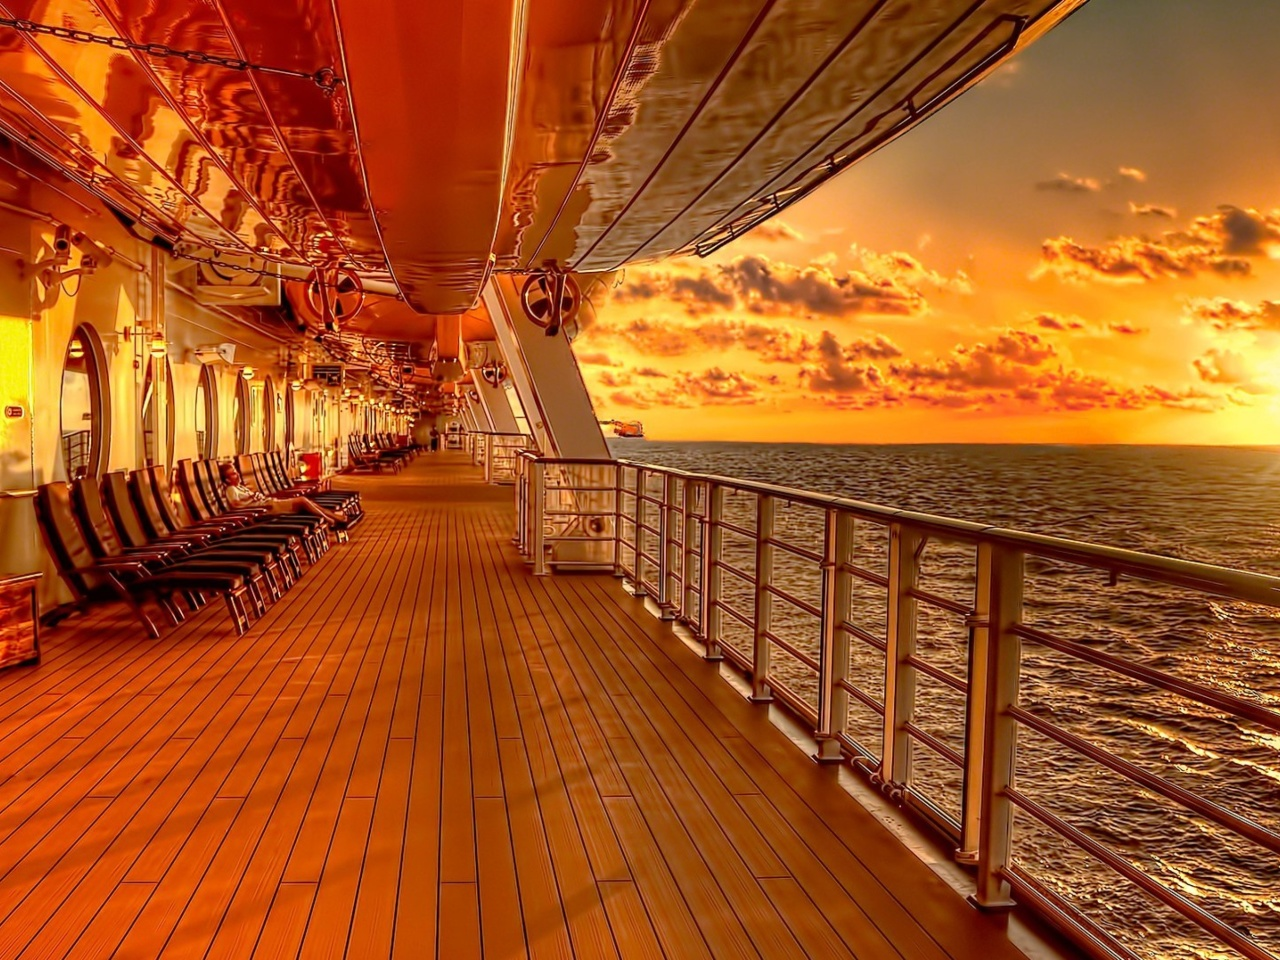 Das Sunset on posh cruise ship Wallpaper 1280x960